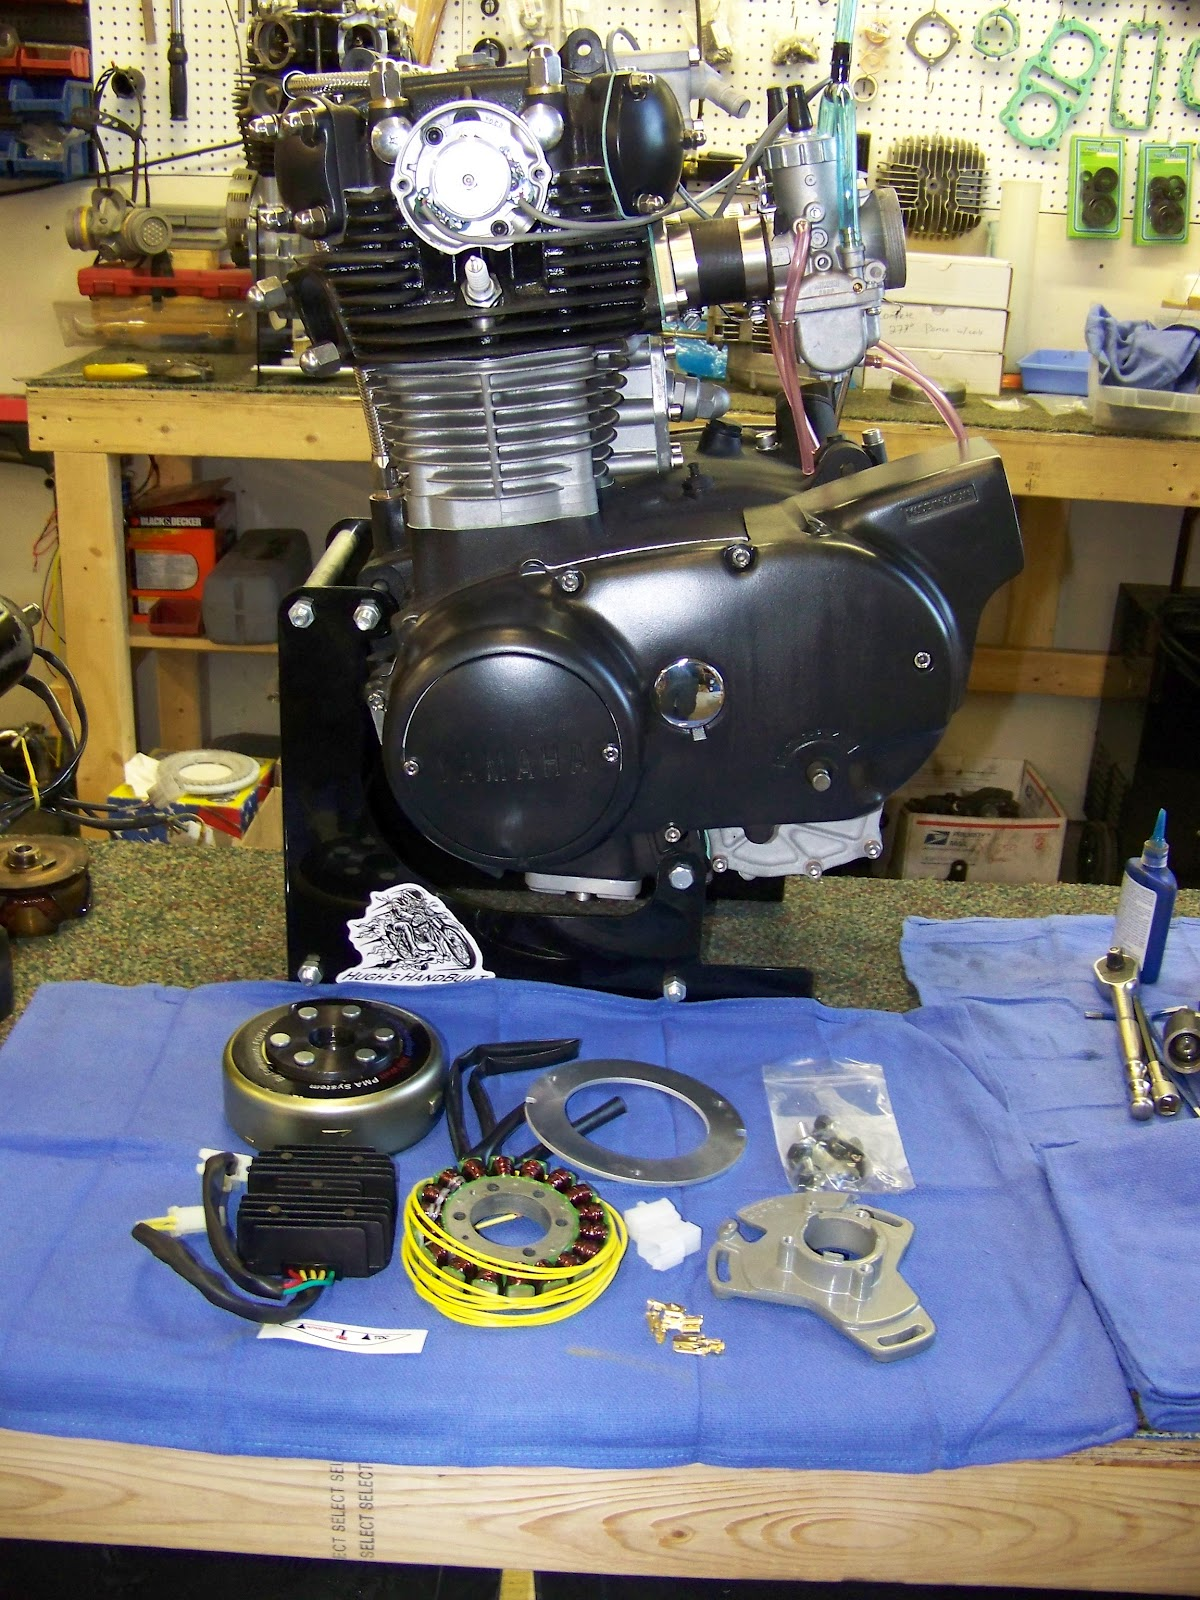 How To Install Your Hughs Handbuilt Pma System On Xs650 Simple Wiring Diagram Electronic Ignition The Beauty Of Is That You Can Even Get An Engine Running Without Installing It In A Bike And Charging Too